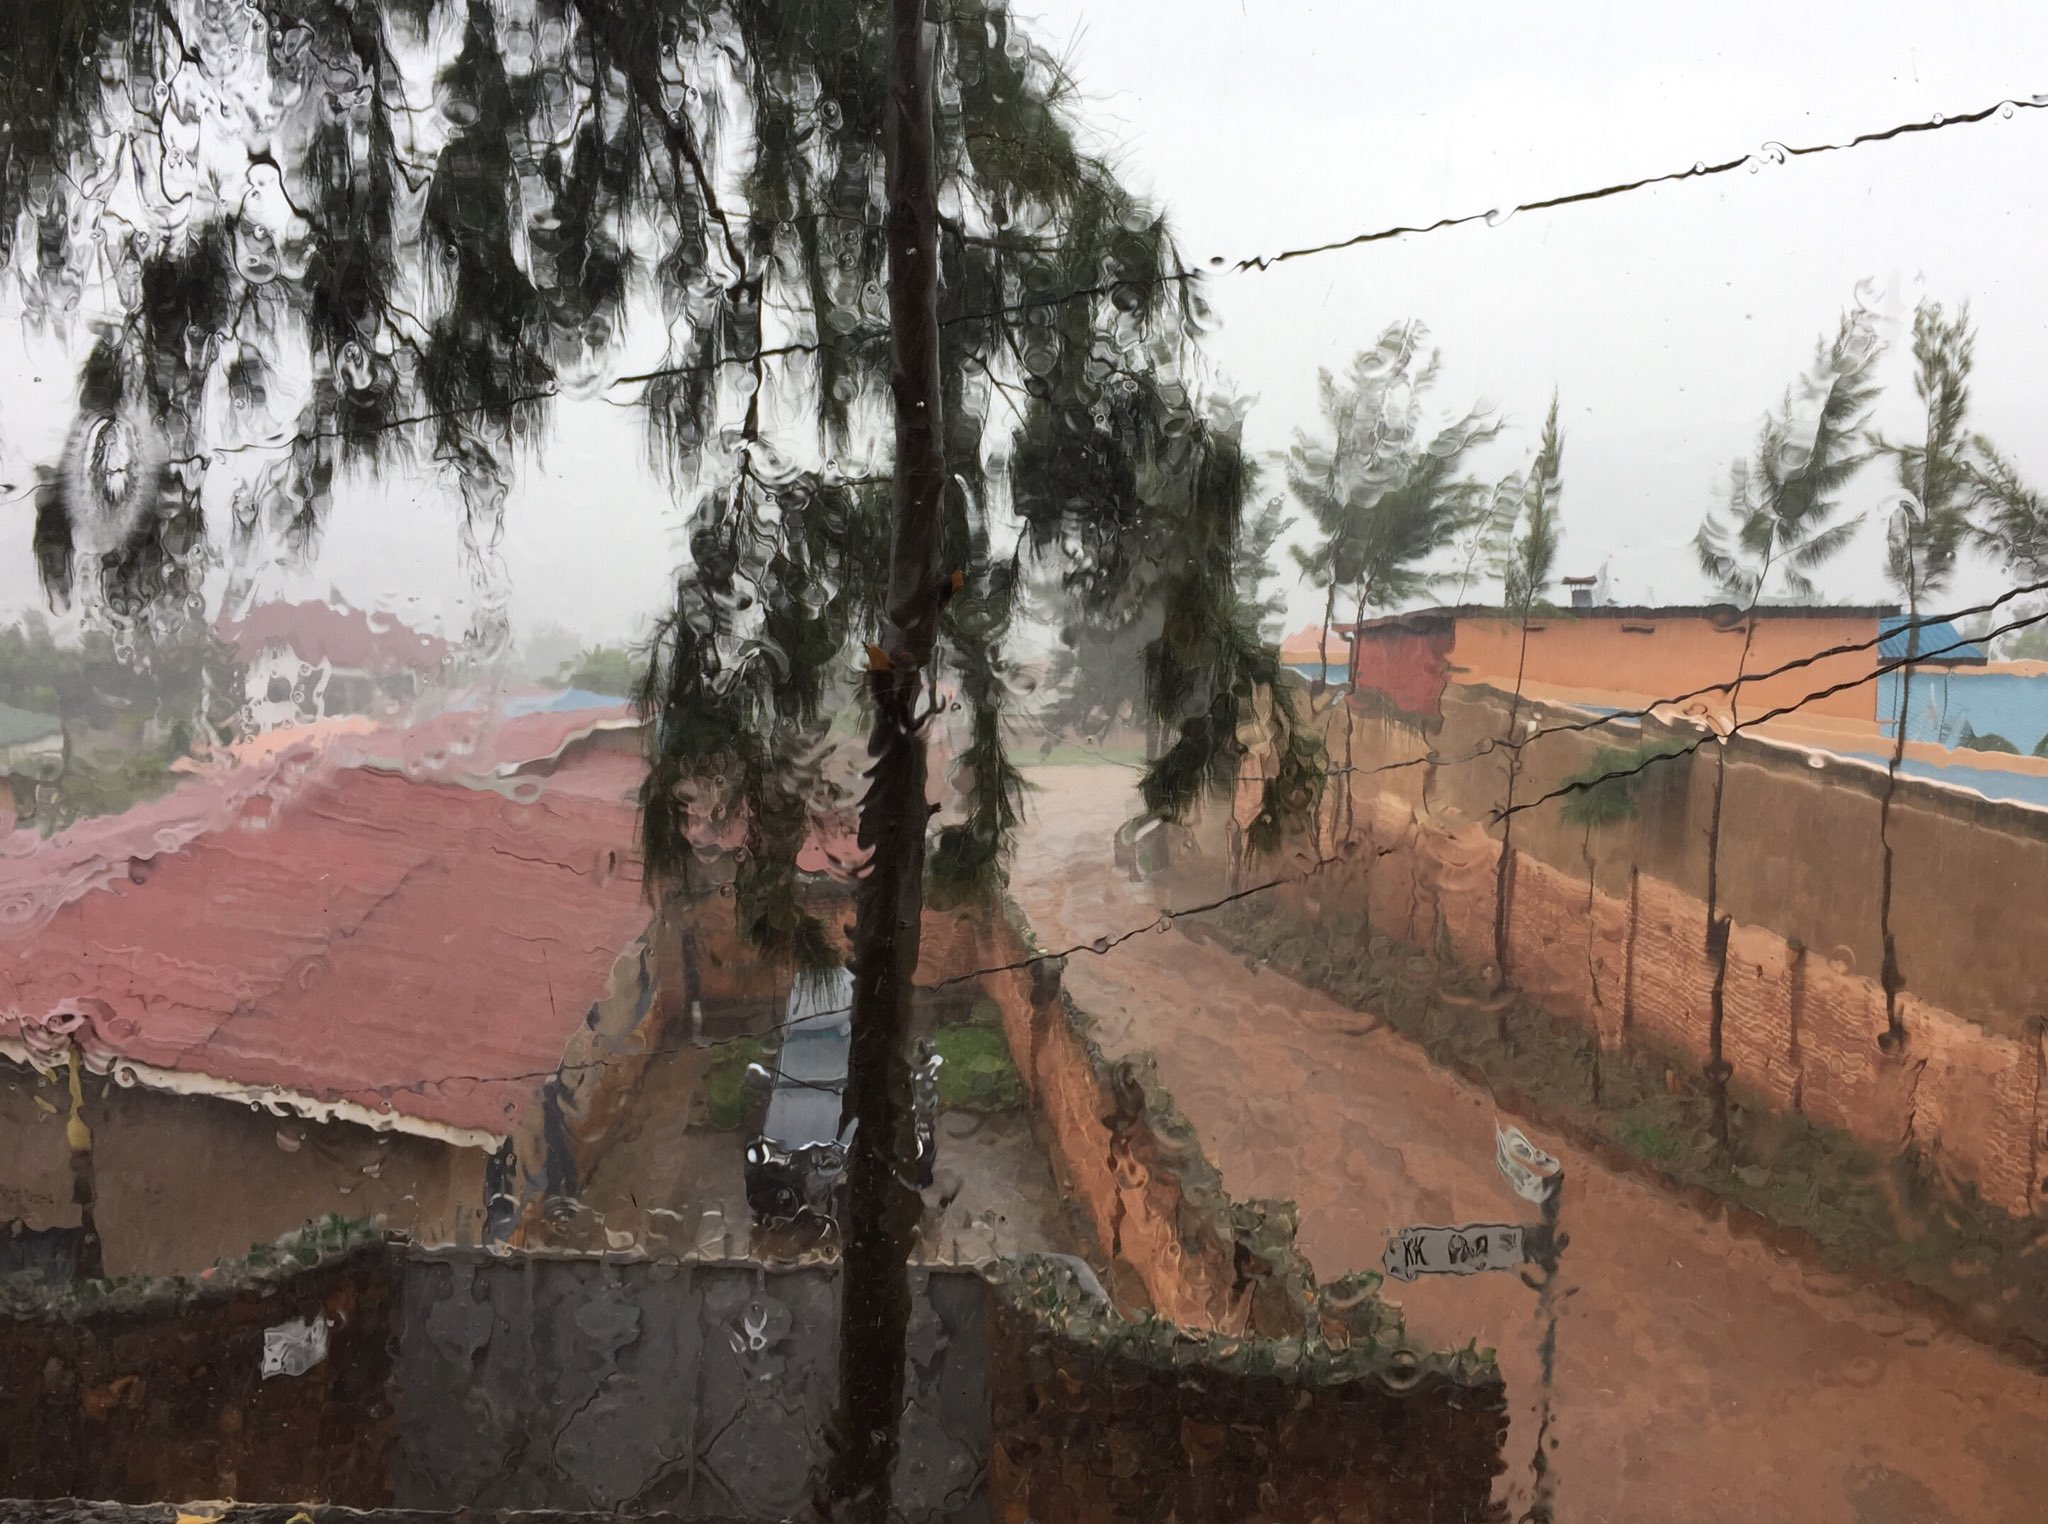 Greetings from a wet Kigali morning. #rainyseason https://t.co/KbOOJD9sf1